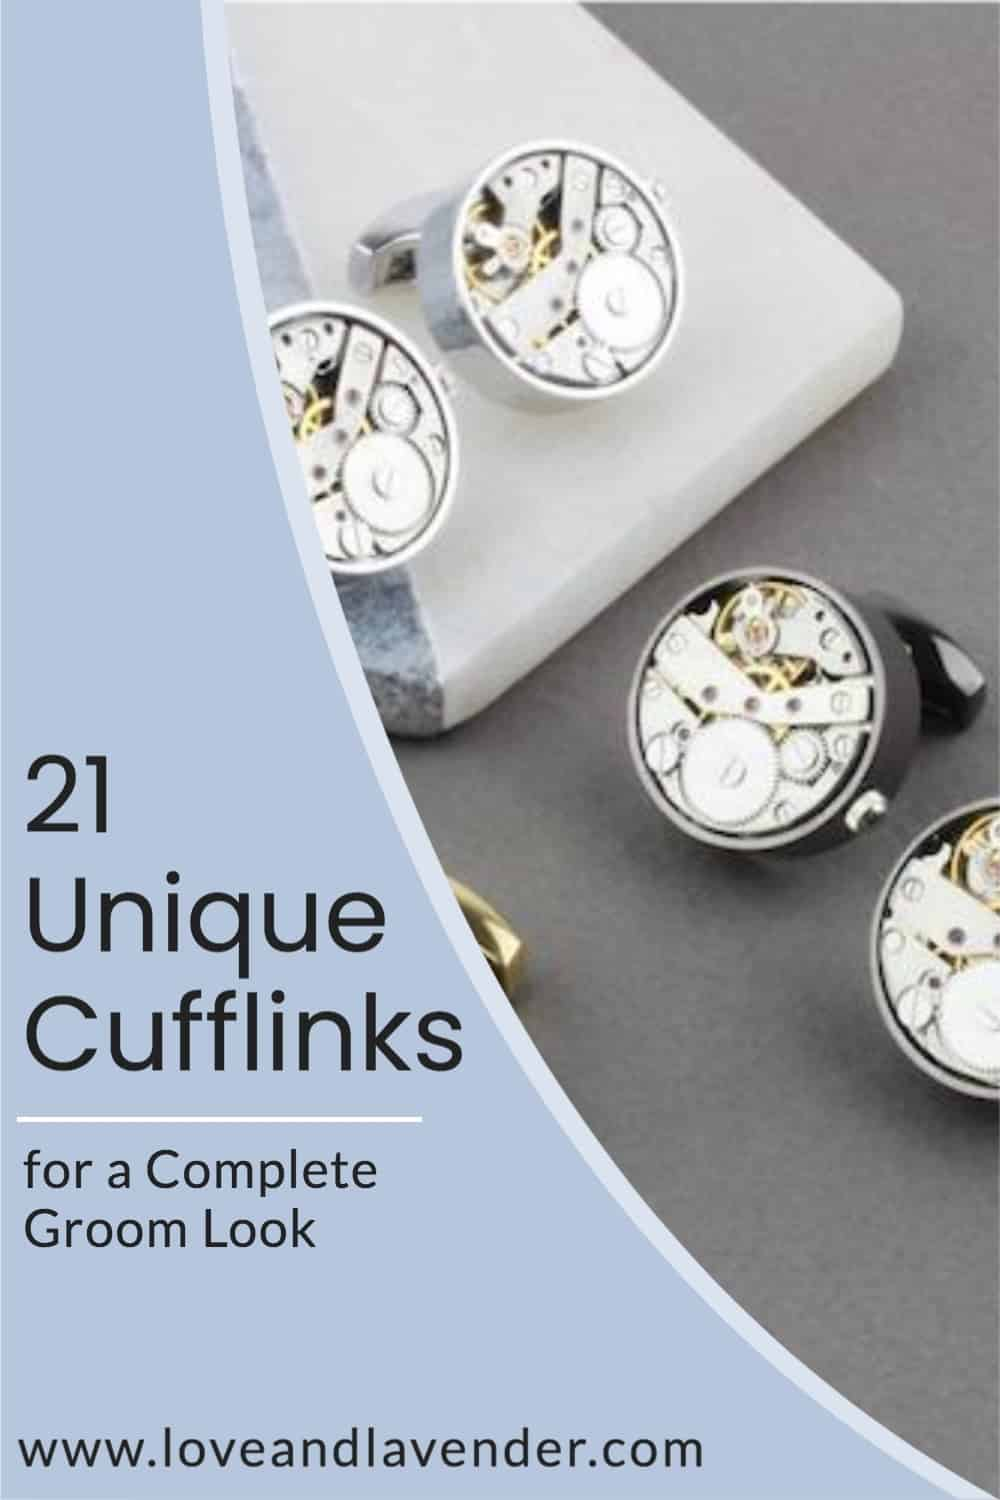 Pinterest Pin - Unique Cufflinks